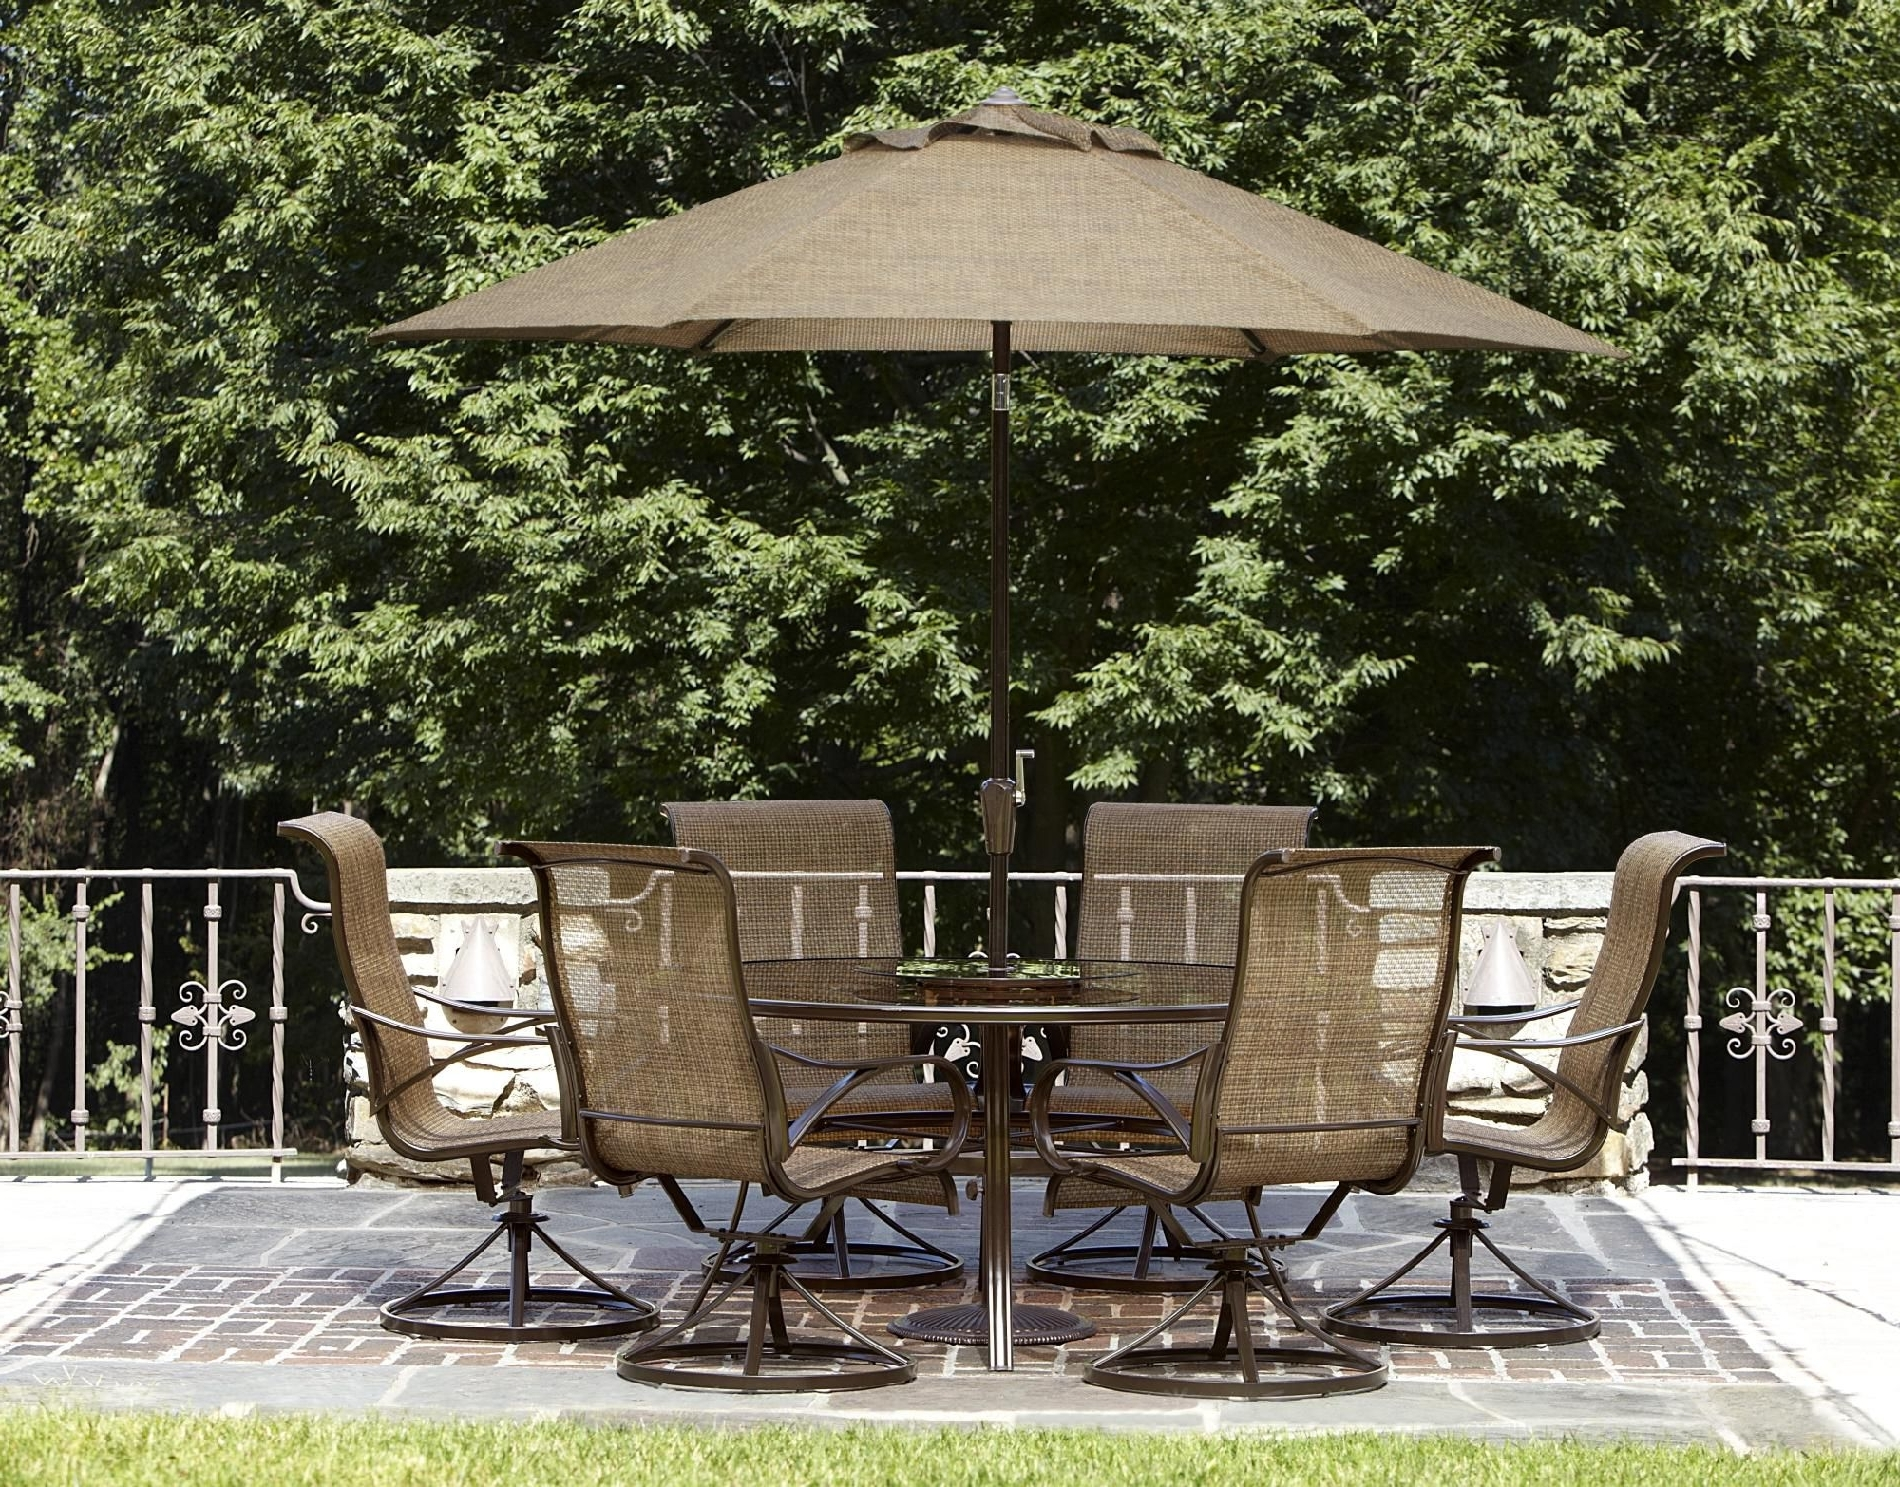 Best And Newest Garden: Enchanting Outdoor Patio Decor Ideas With Patio Umbrellas Throughout Cheap Patio Umbrellas (View 5 of 20)